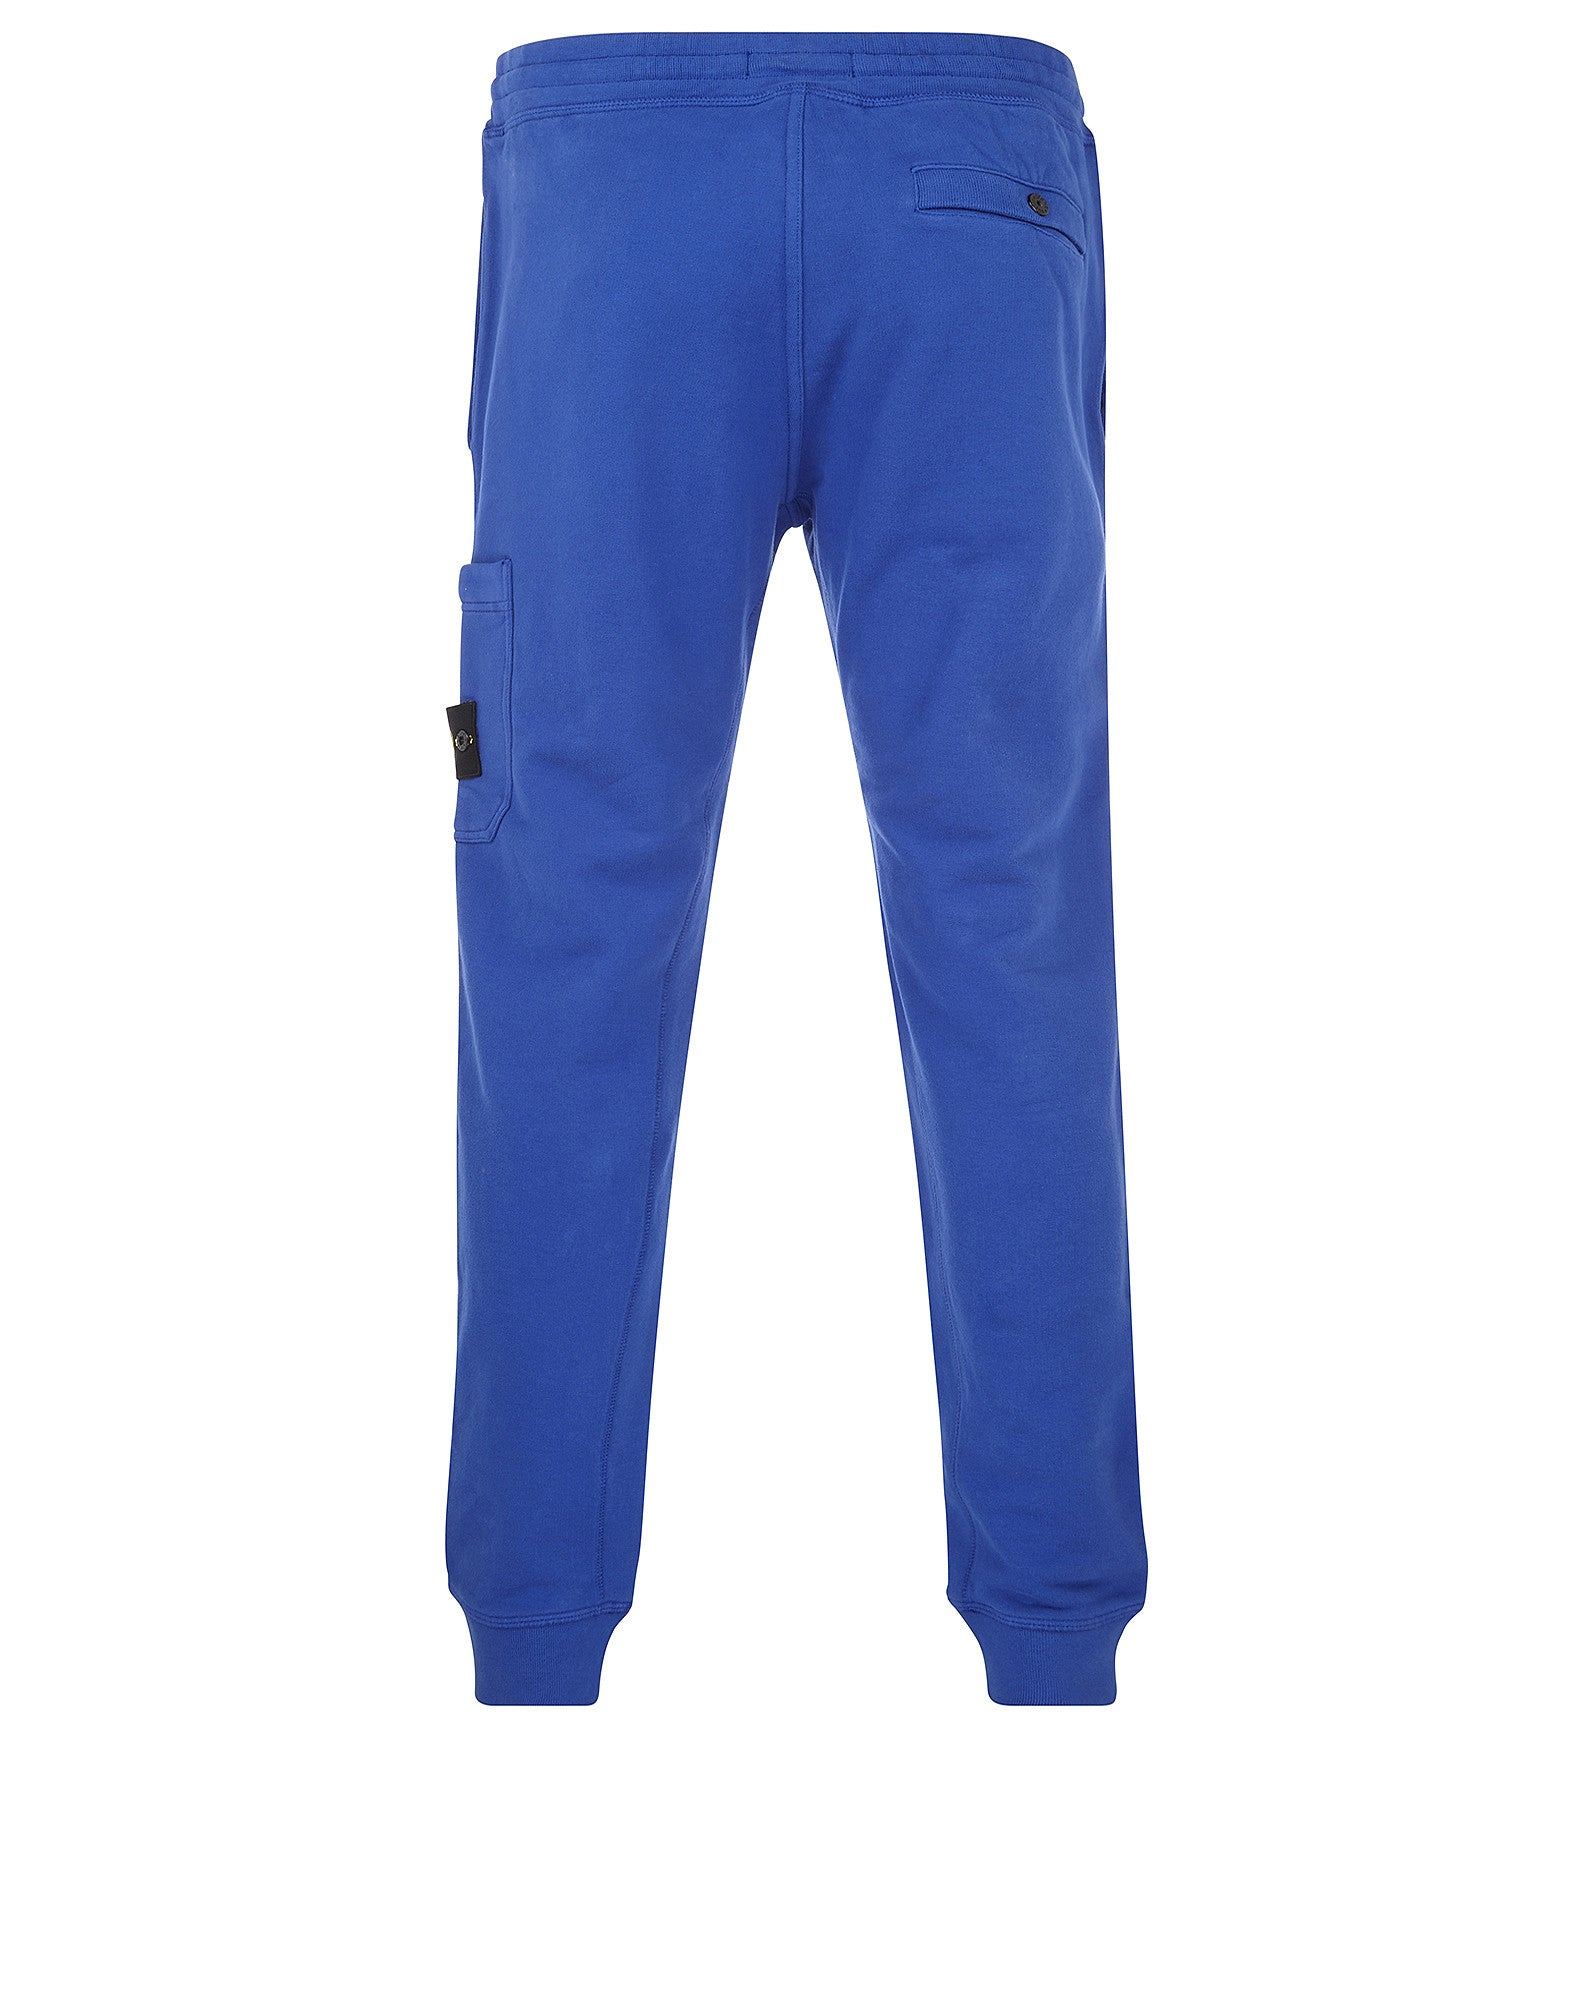 66620 Brushed Cotton Fleece Sweatpants in Blue